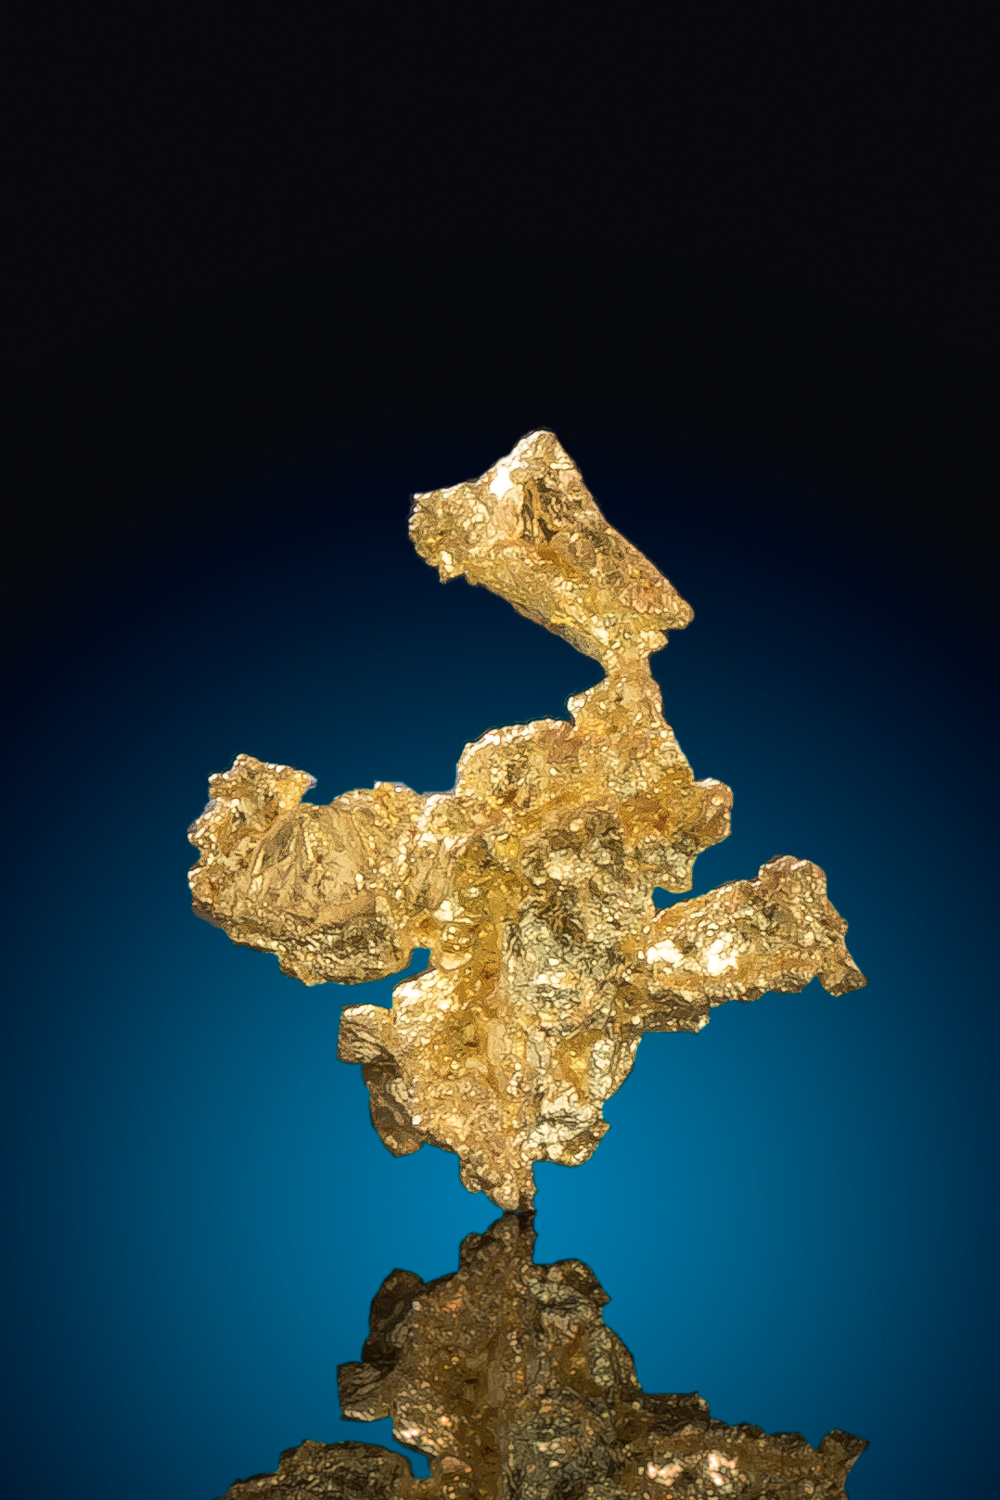 Unusual Shape - Crystalline Gold Nugget - Eagles Nest Gold Mine